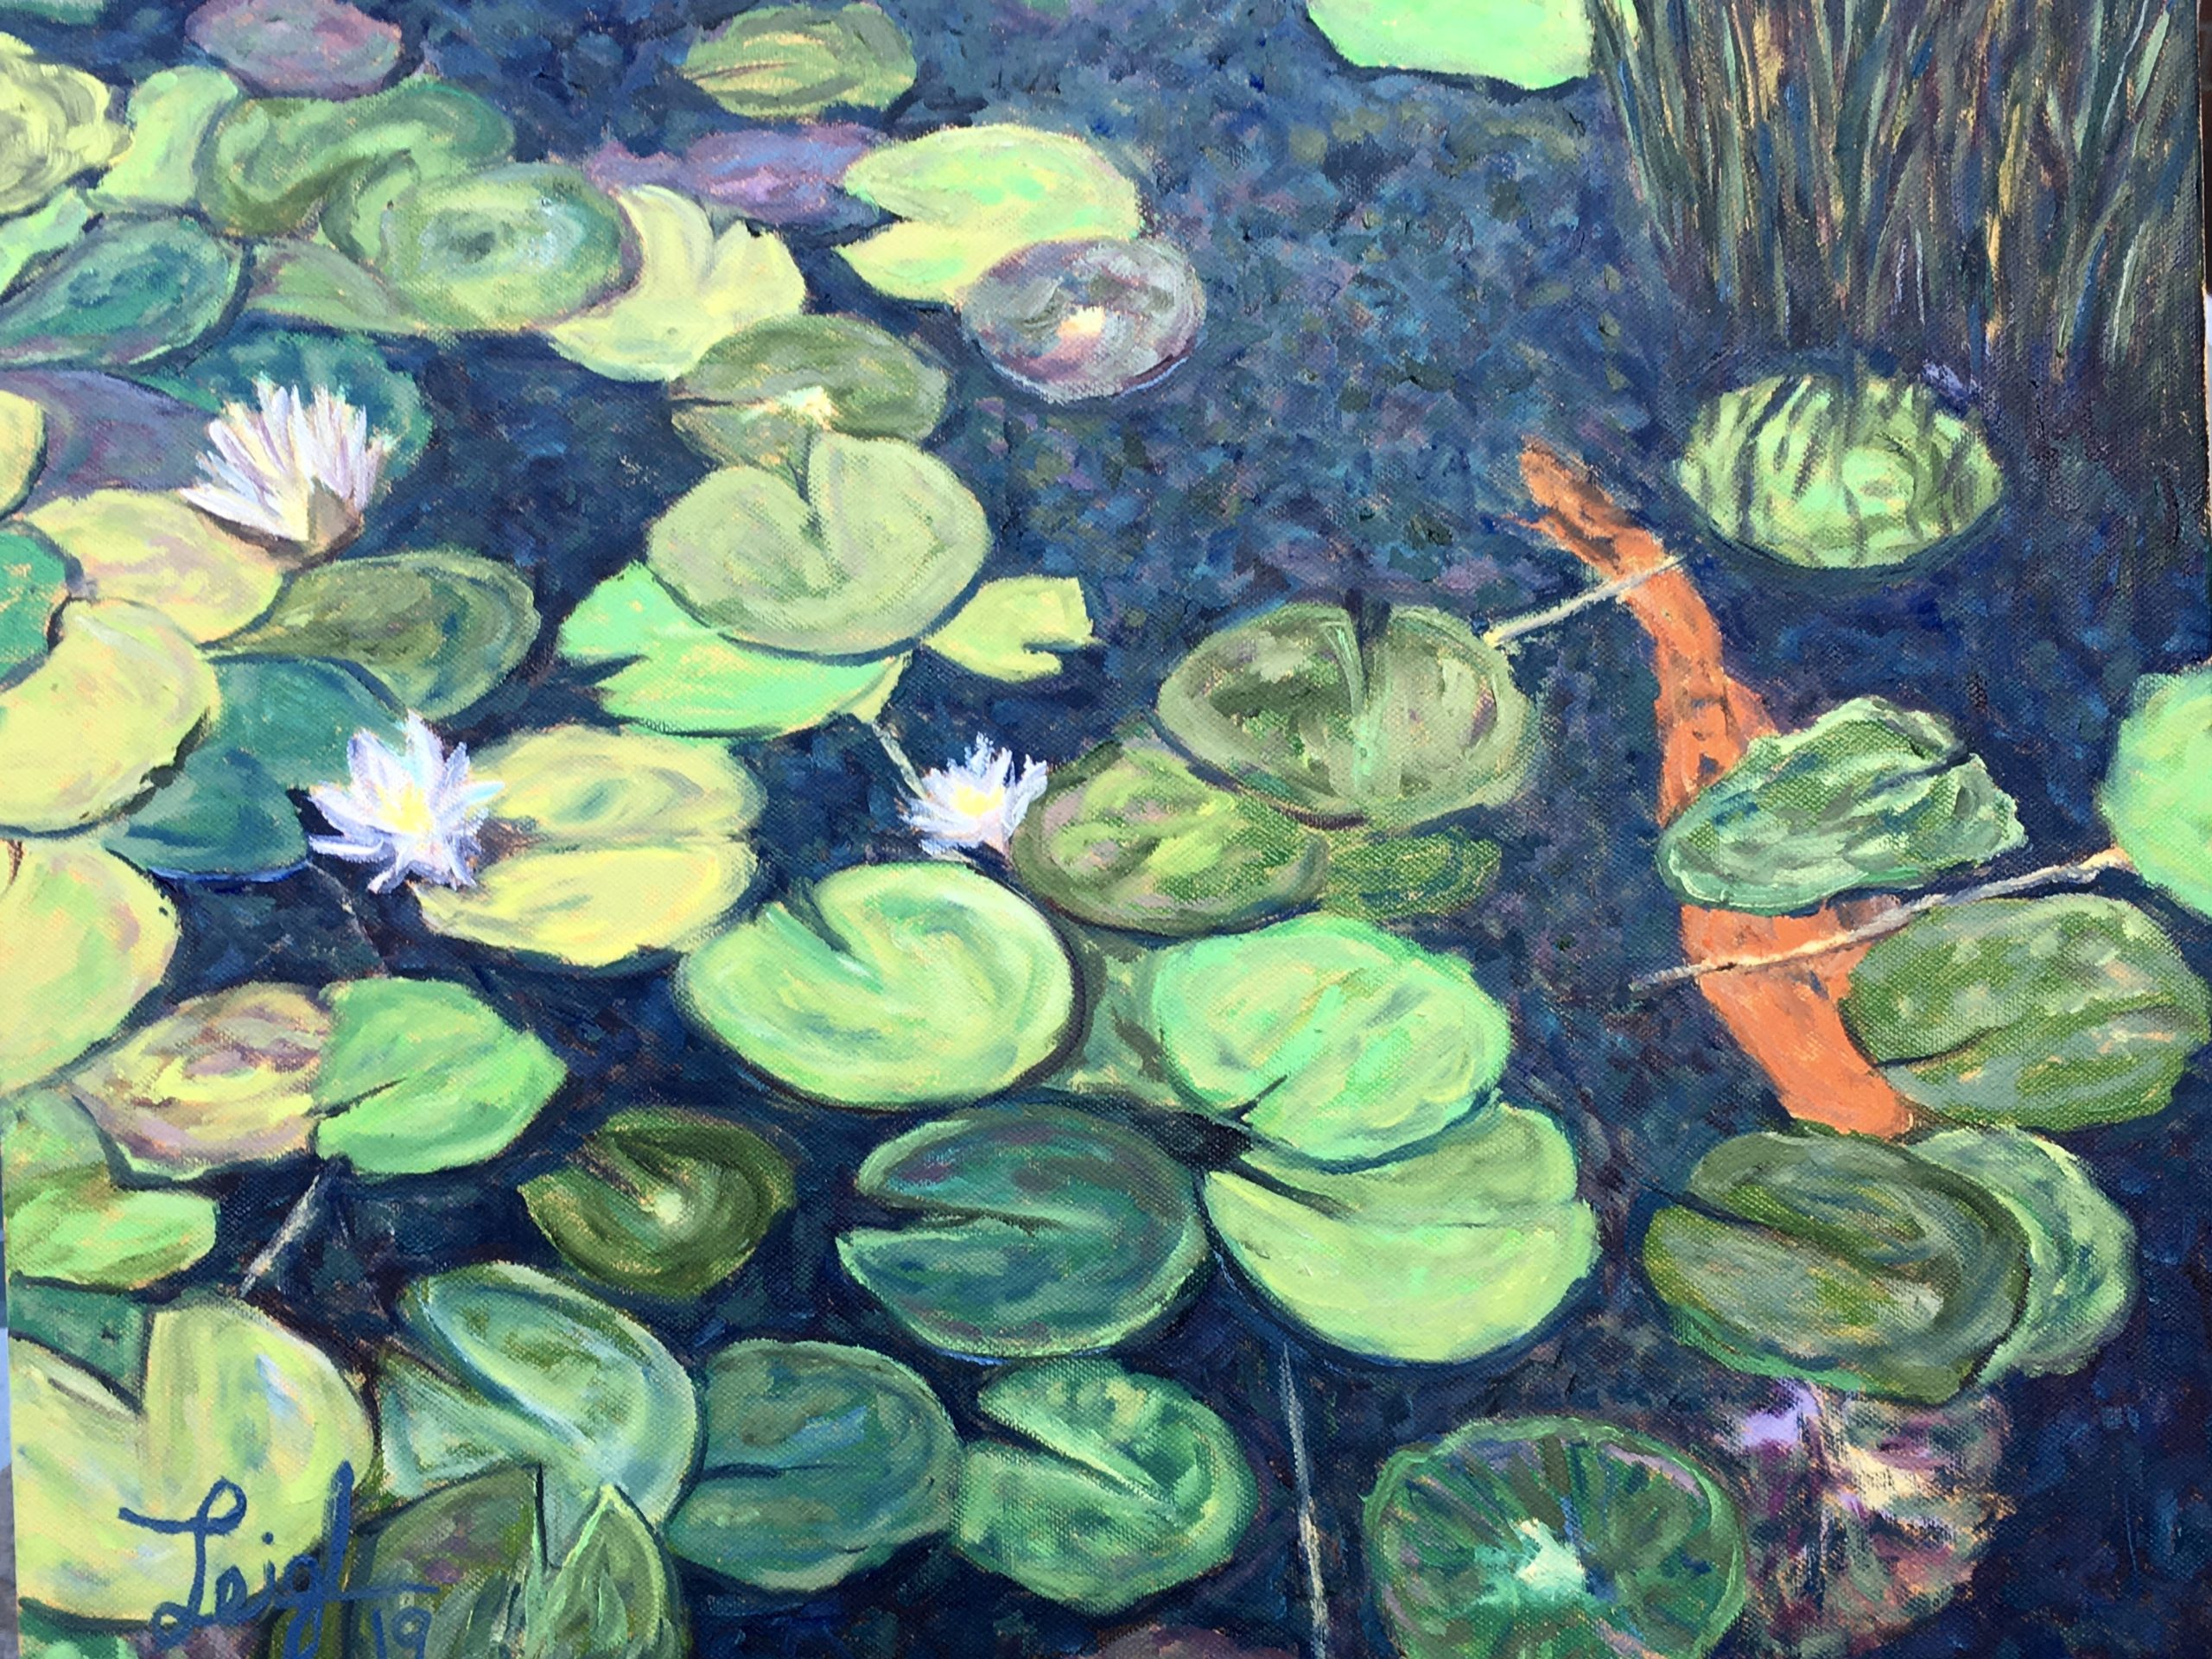 Water lilies in Balboa Park #5  ~  Amy & Tom Booth, San Diego, CA 2019  •  20 x 16